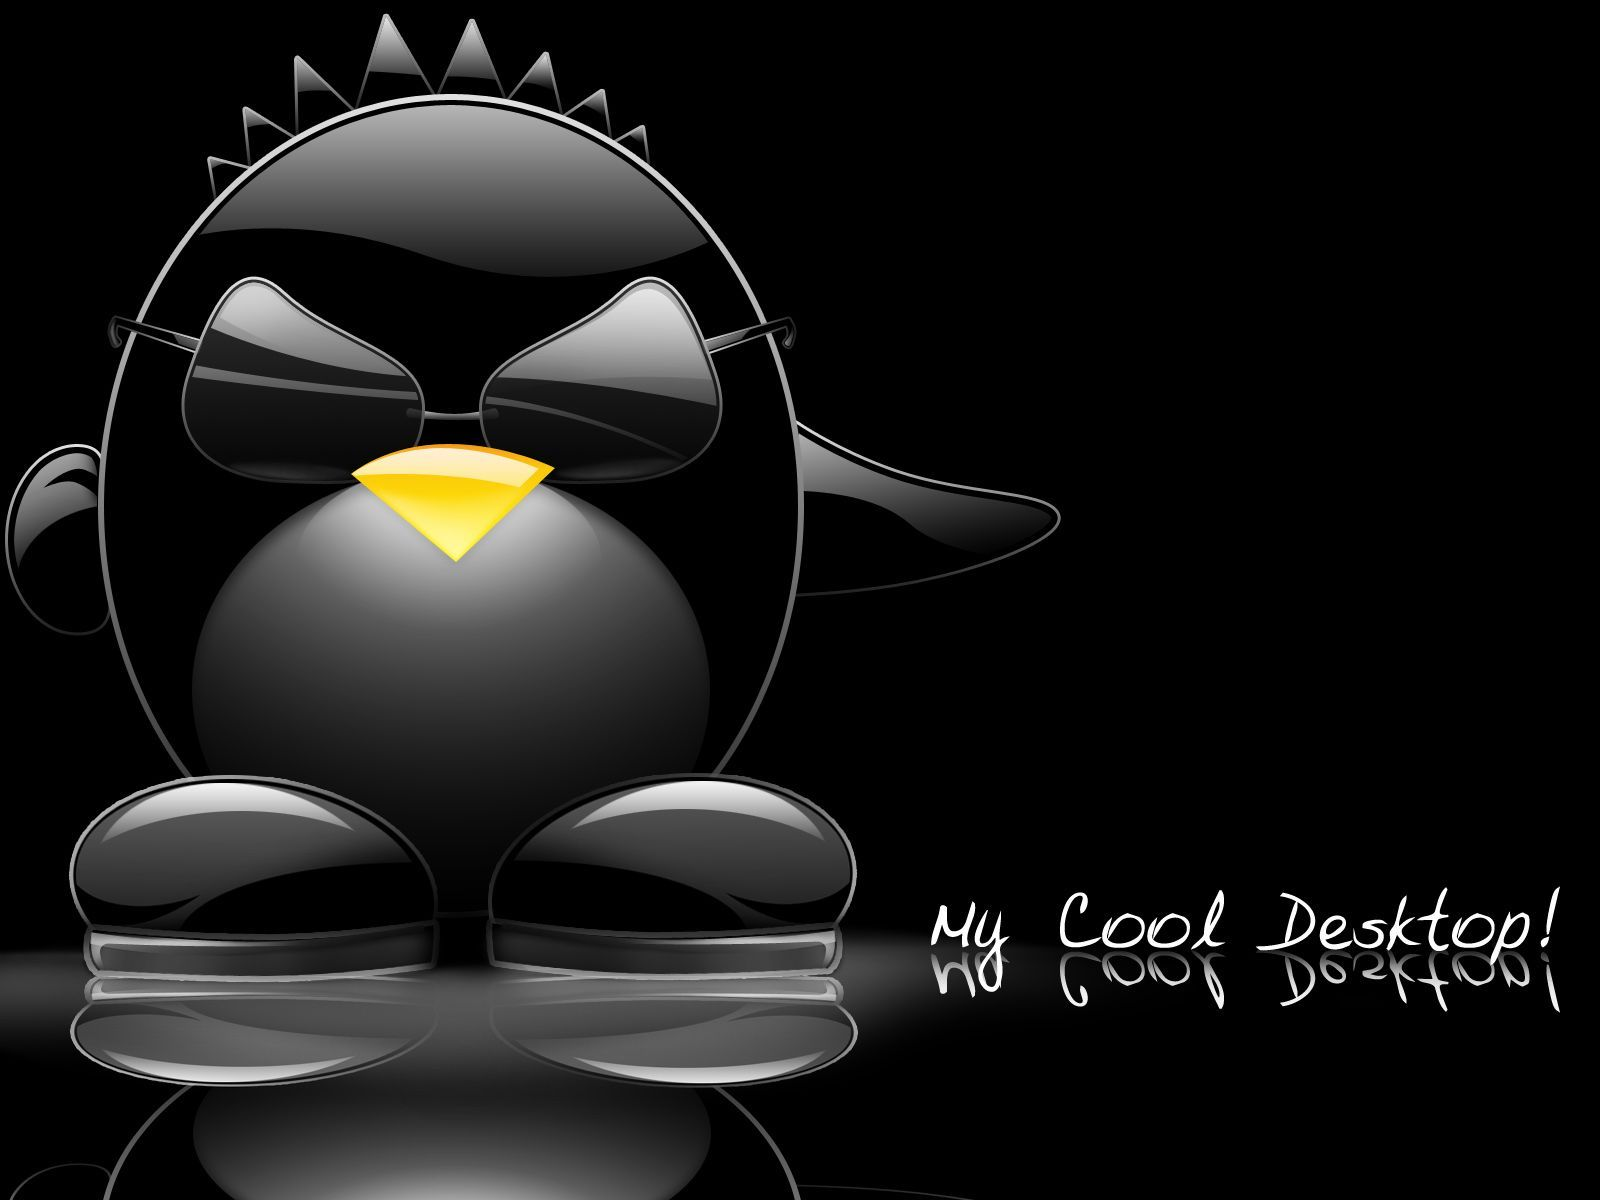 31 download my cool desktop wallpaper hd free 664 cool